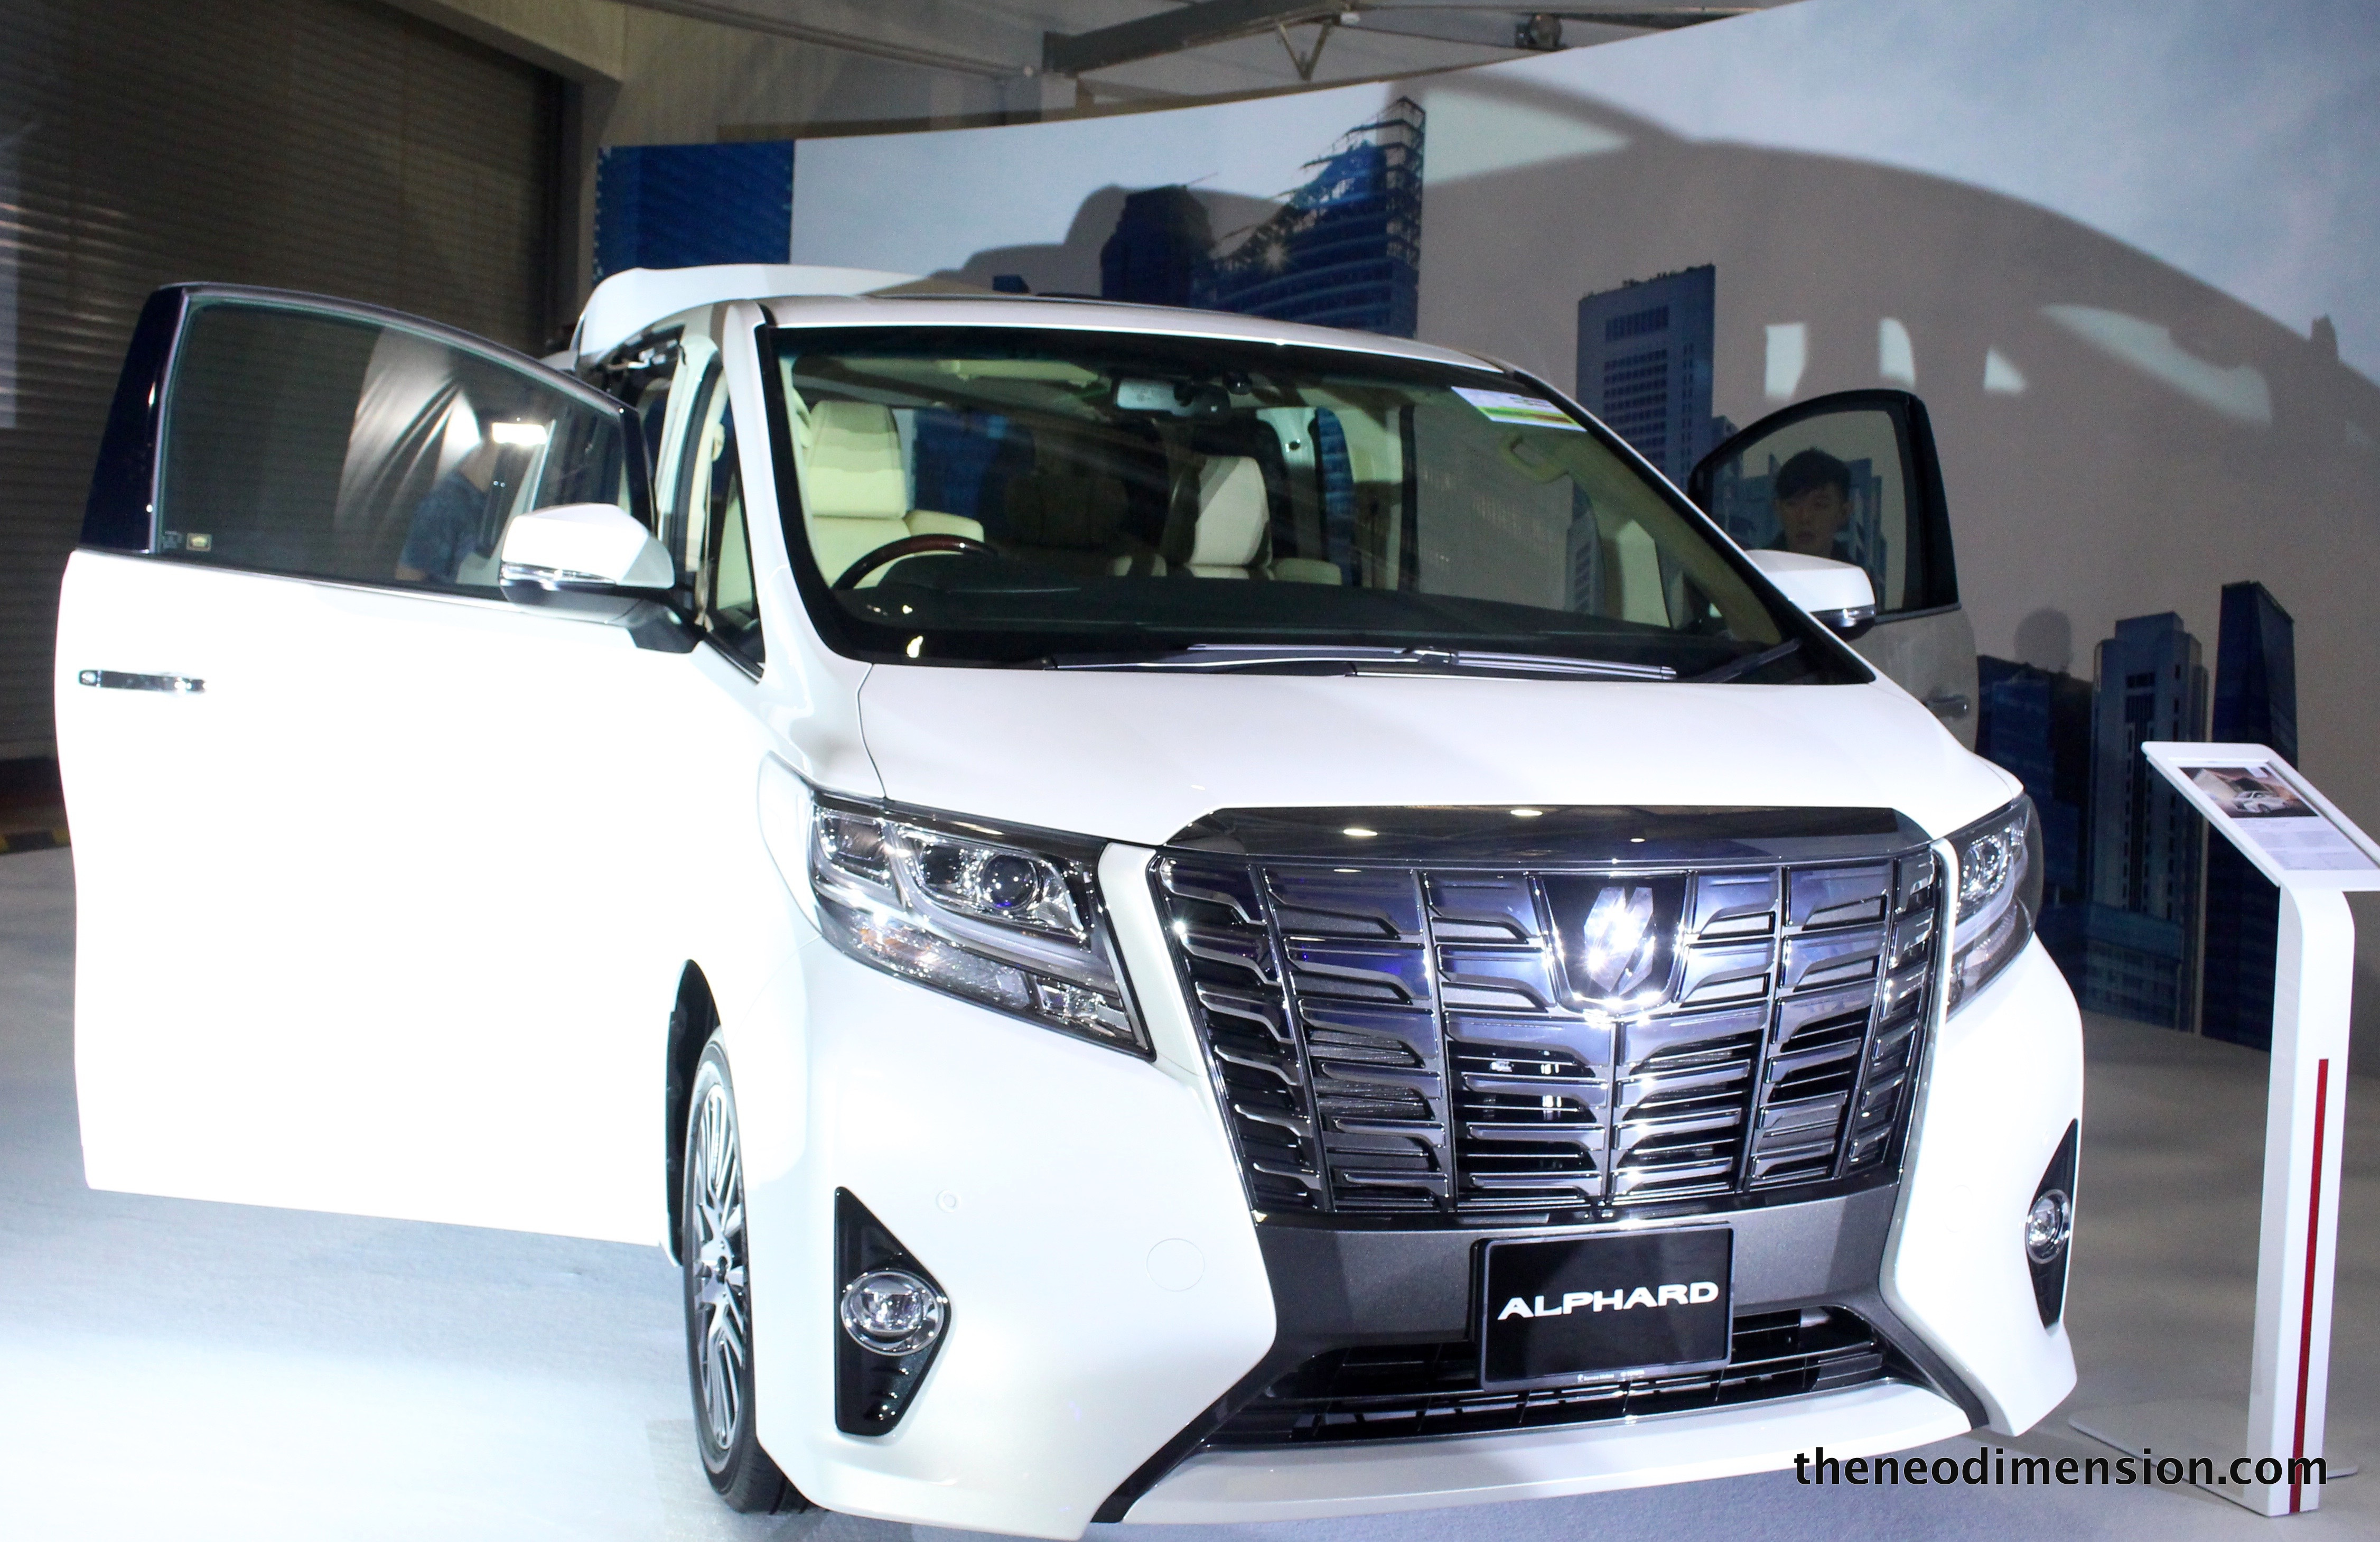 Borneo Motors Launched Toyota Alphard and Vellfire | The Neo